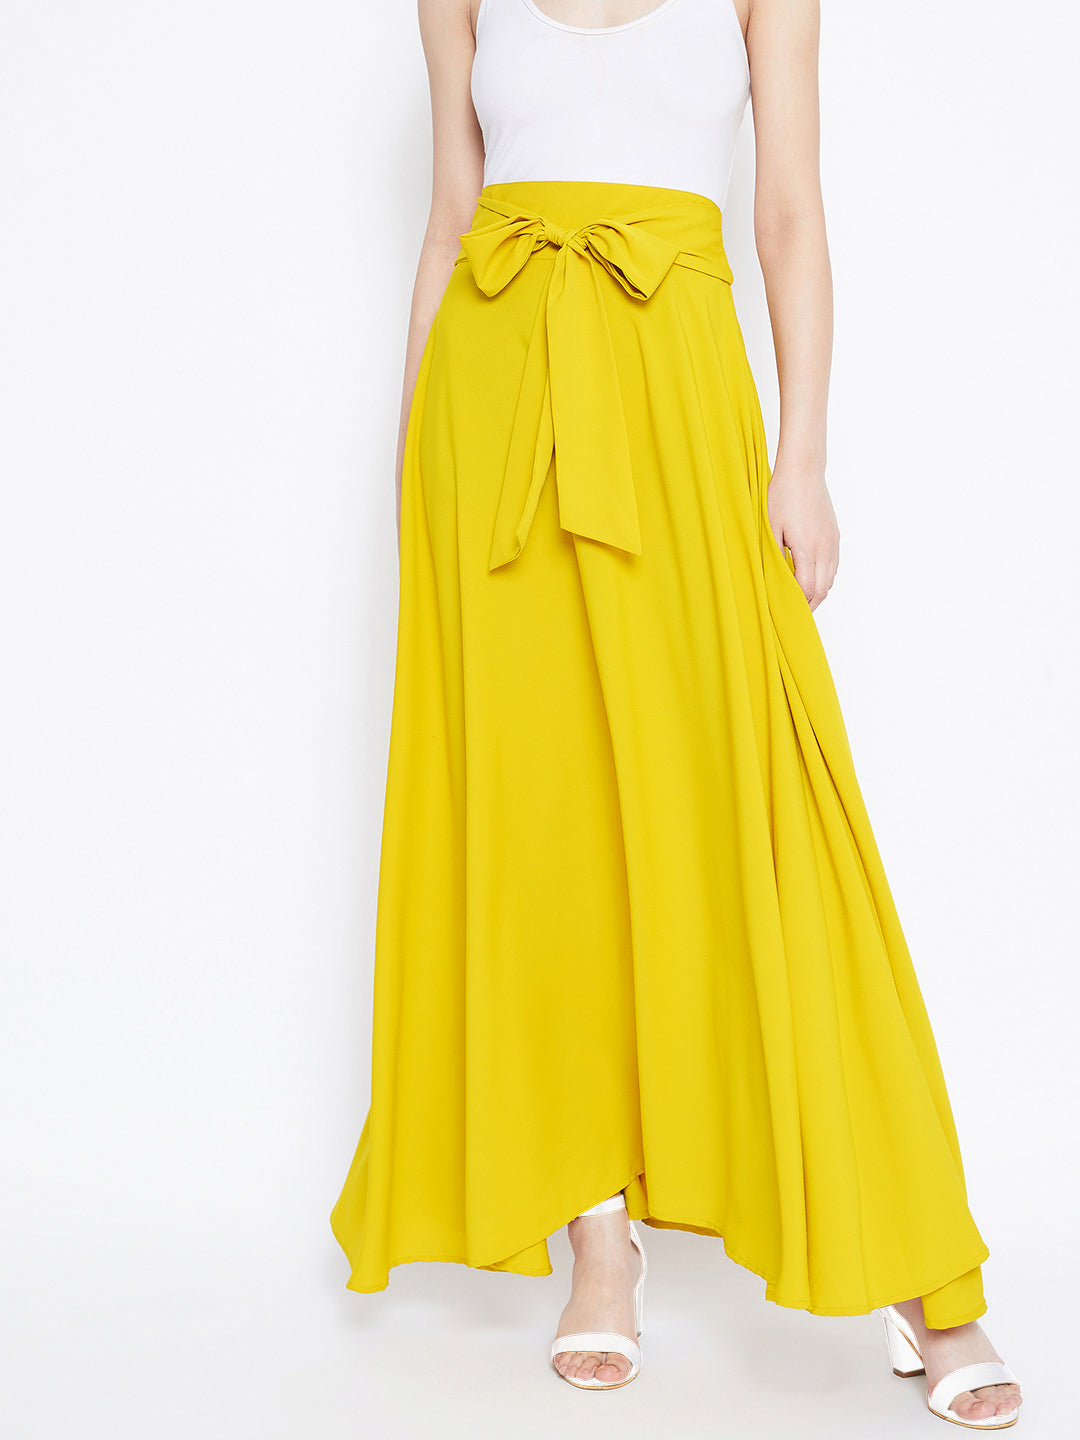 Berrylush Women Yellow Solid Flared Maxi Skirt